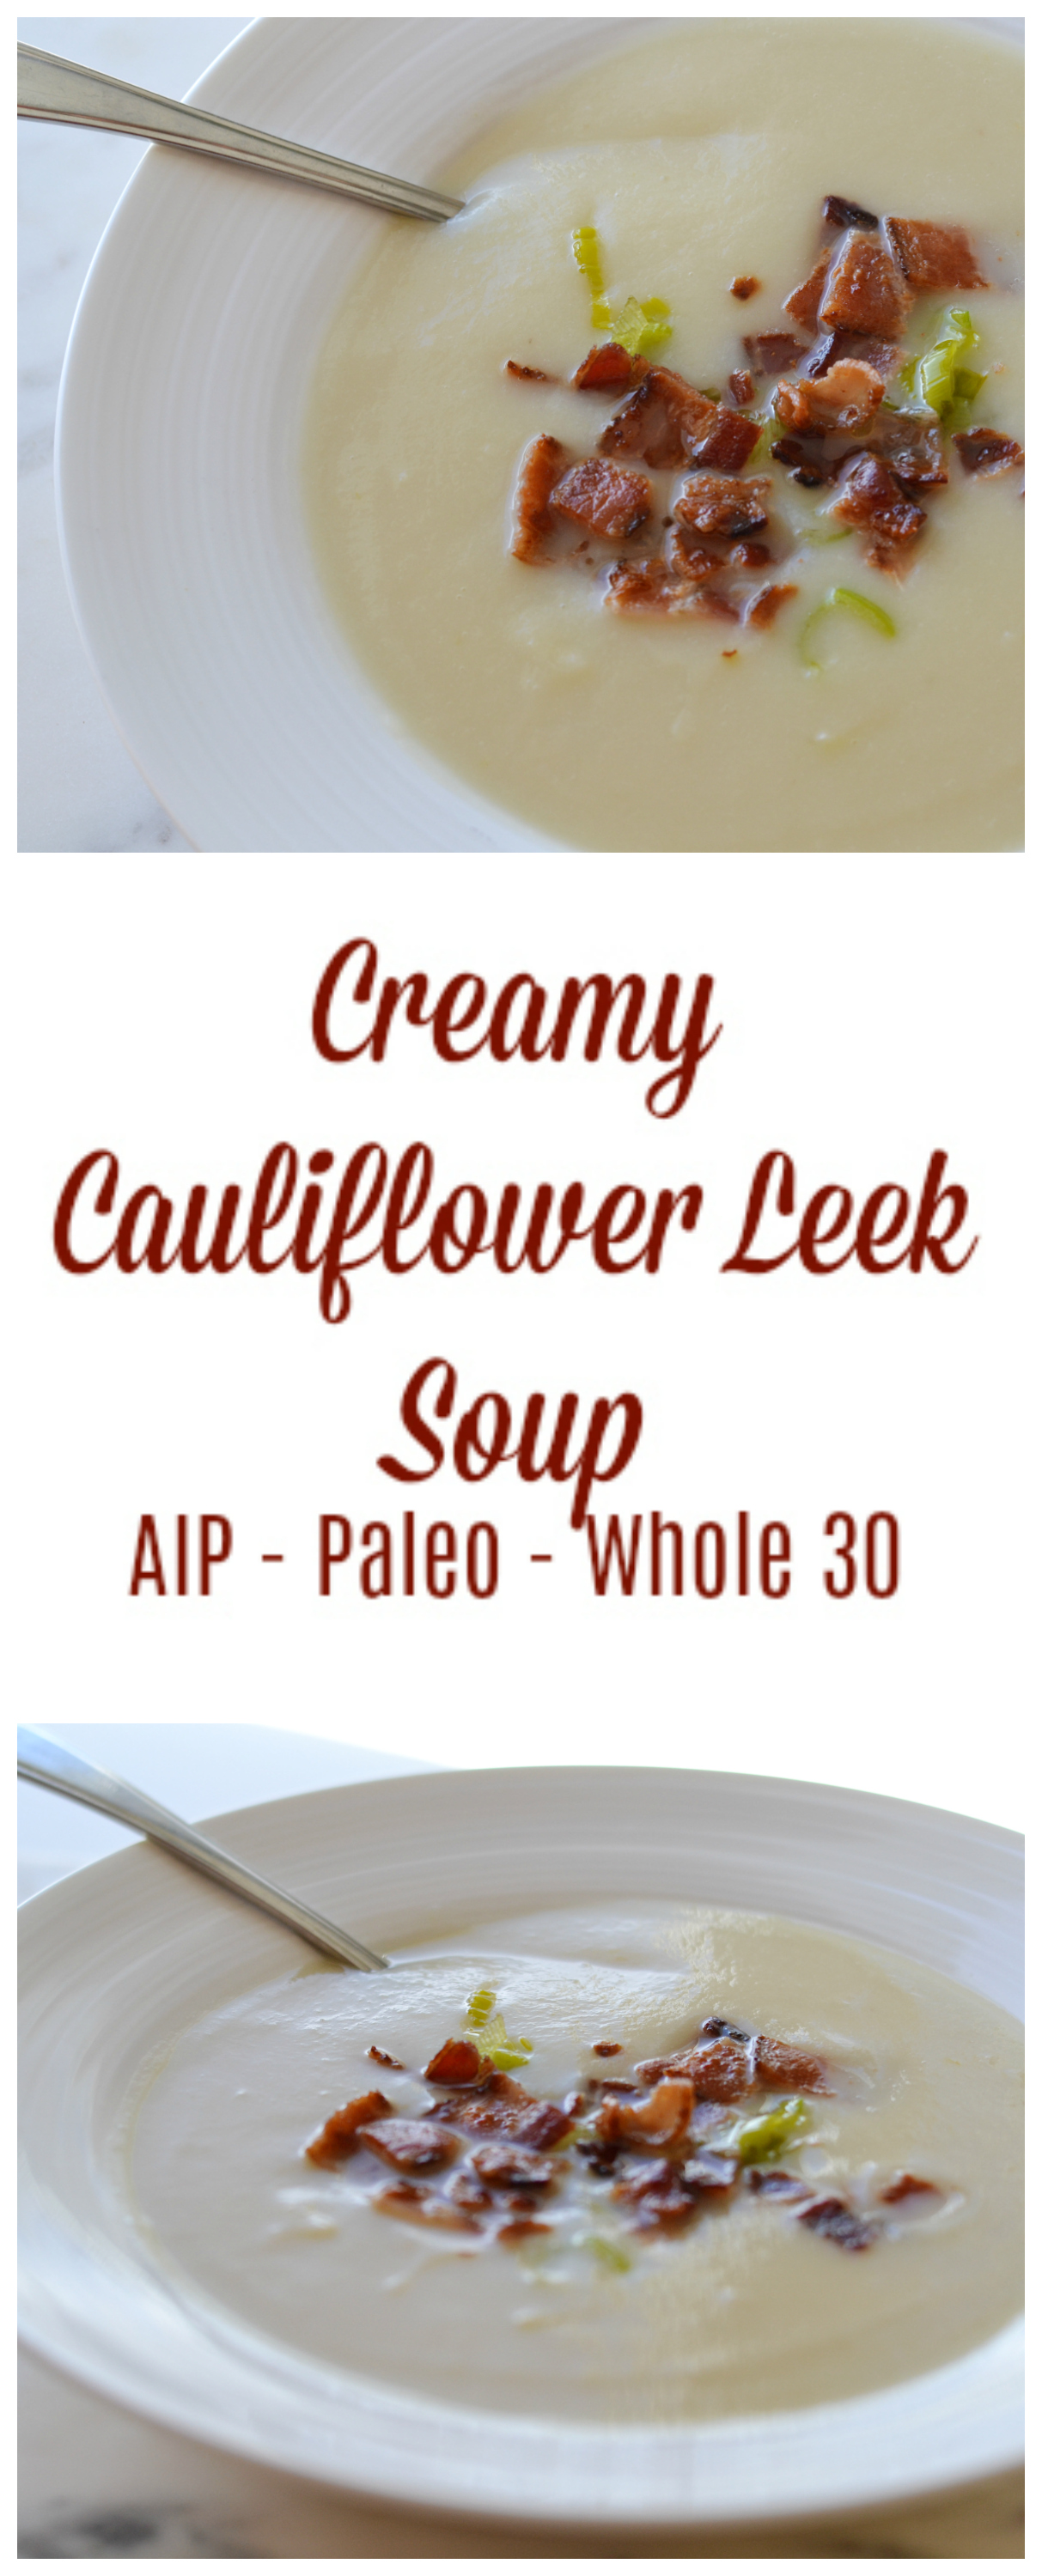 Aip Cauliflower Soup creamy cauliflower leek soup (aip/paleo/whole 30)